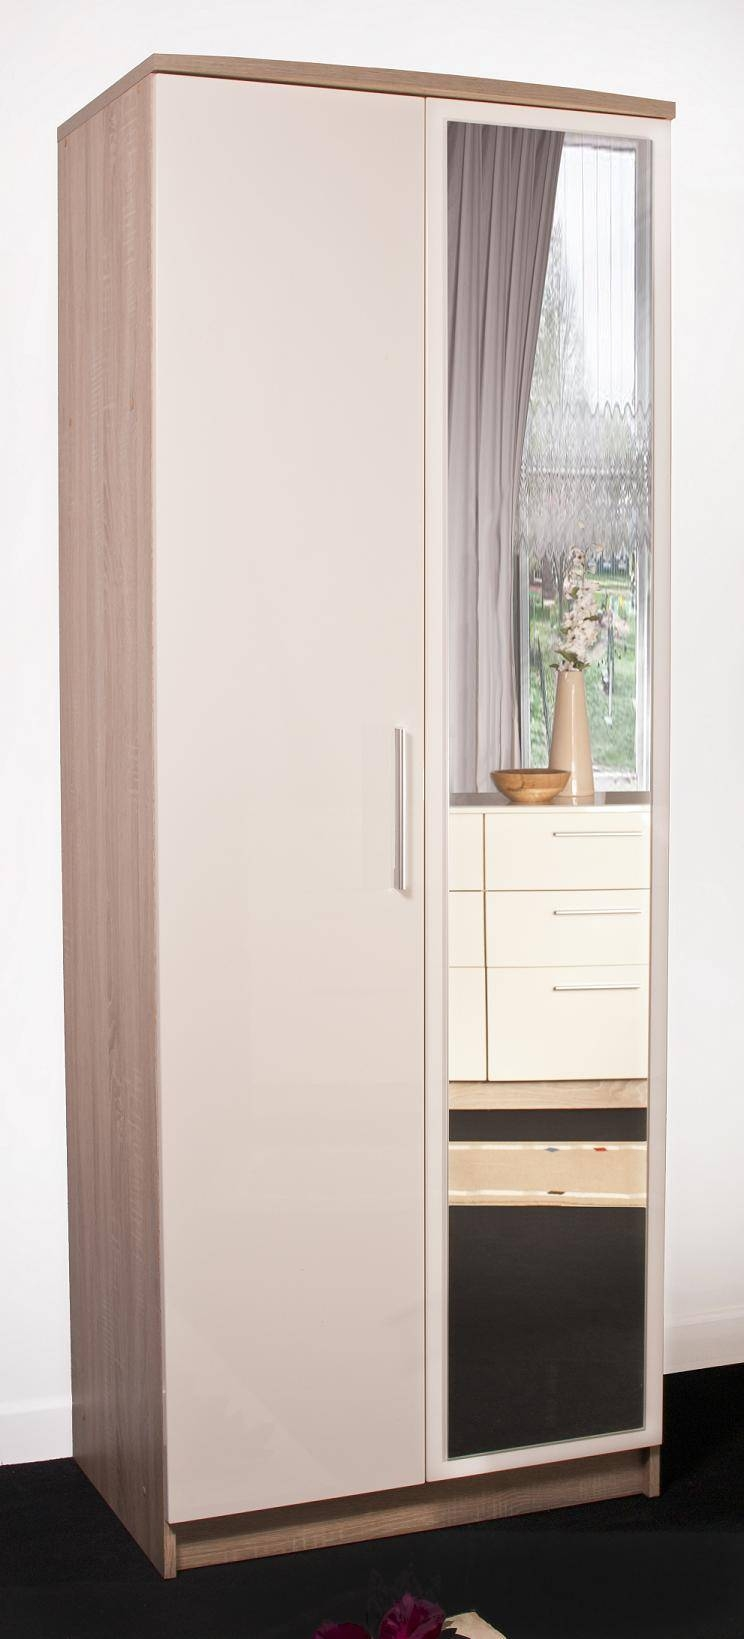 Mirrored Doors : Andre Victoire: Furniture Delivered And Assembled in Oak Mirrored Wardrobes (Image 7 of 15)